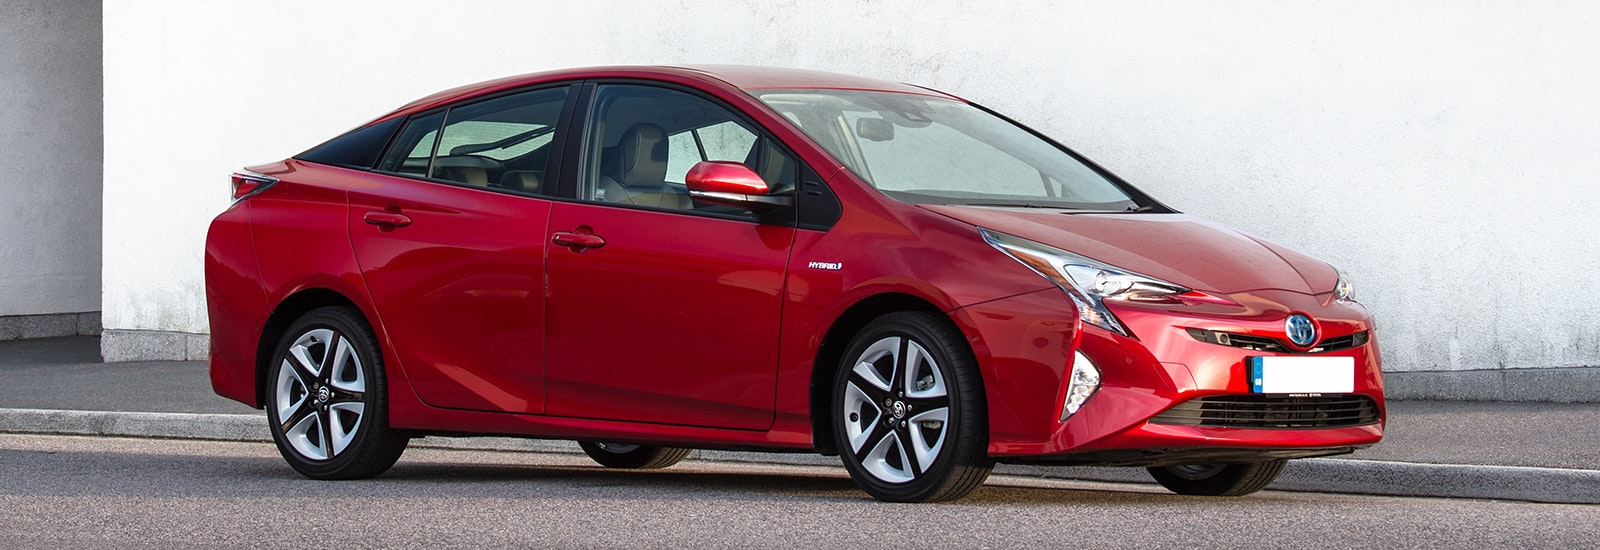 toyota prius red front